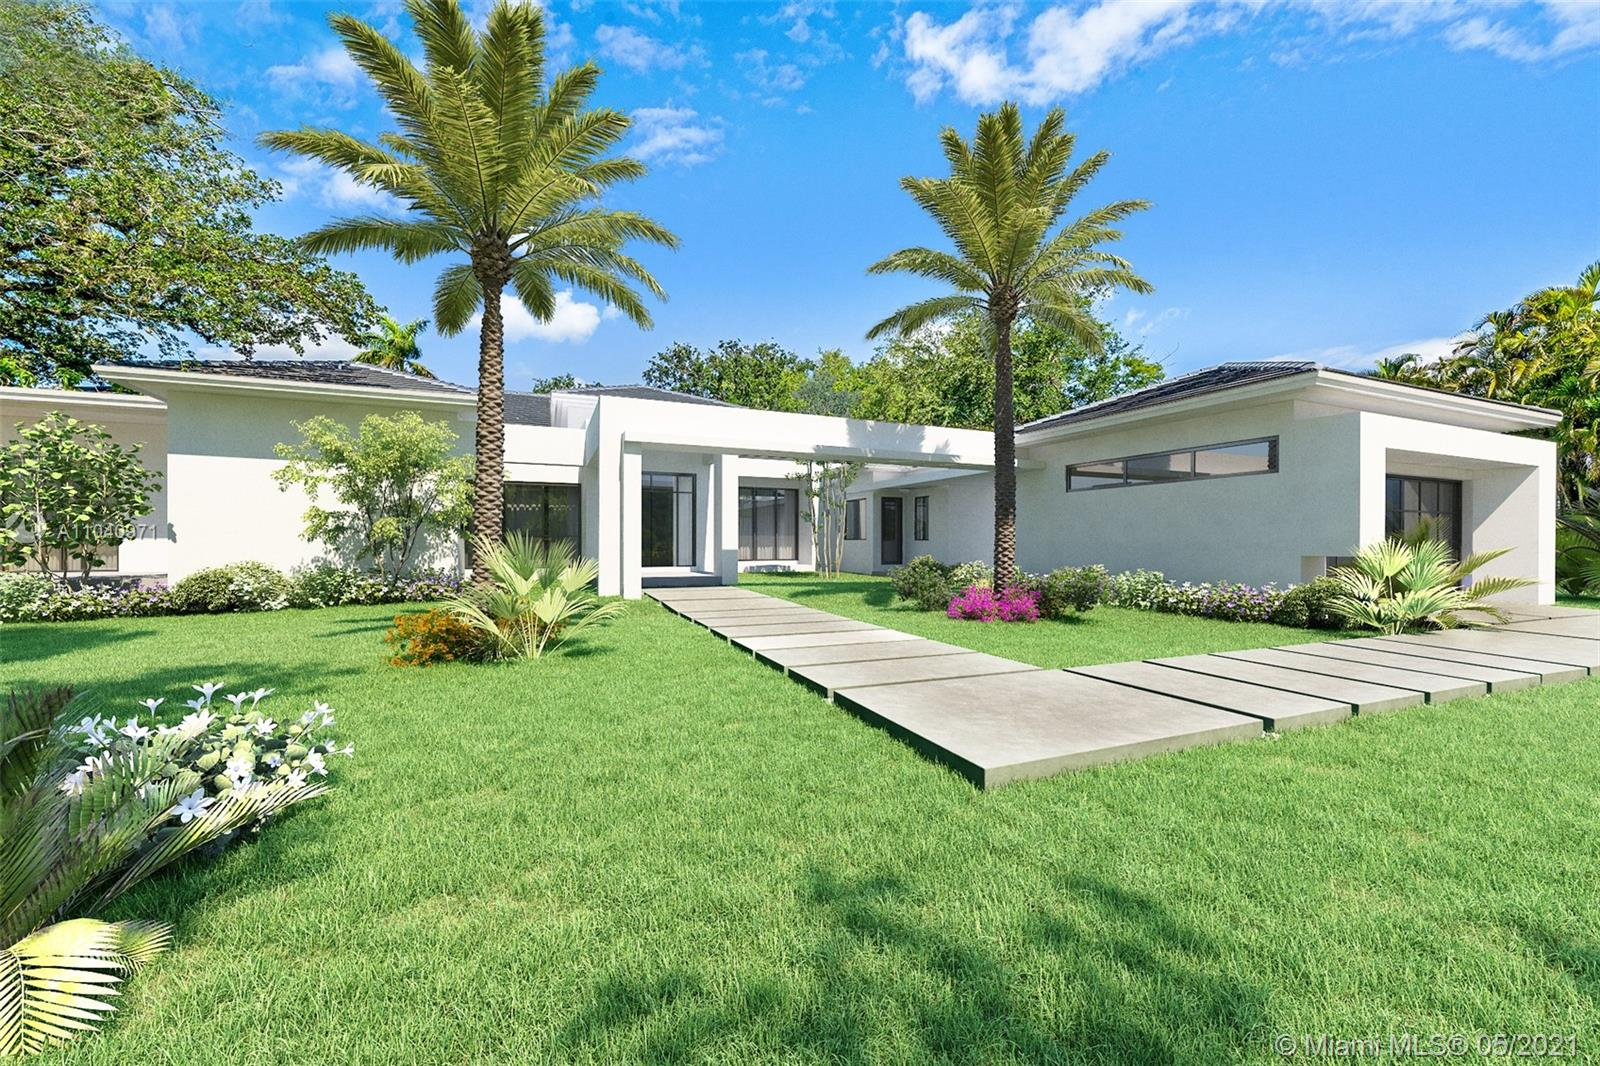 This spectacular modern estate built by Crawford Development offers a grand North Pinecrest location & situated on an expansive corner lot covered w/ green grounds & beautiful oaks and foliage. This gorgeous 5,500 sq ft custom design offers an open floorpan which wraps around a reflecting pool for a zen like feel throughout. Chef's kitchen designed by Italkraft & w/ Thermador Appliances, Island, Wine Cooler & Pantry. Cabana with outdoor kitchen & full bath perfect for entertaining. Oversized master overlooking reflecting pool, sitting area & Walk-In Closet. Unique design features channeling midcentury modern influences throughout. Other features include 2 car garage w/ space to add lift for additional parking, generator ready, two entrances on each side of lot a& A+ schools.